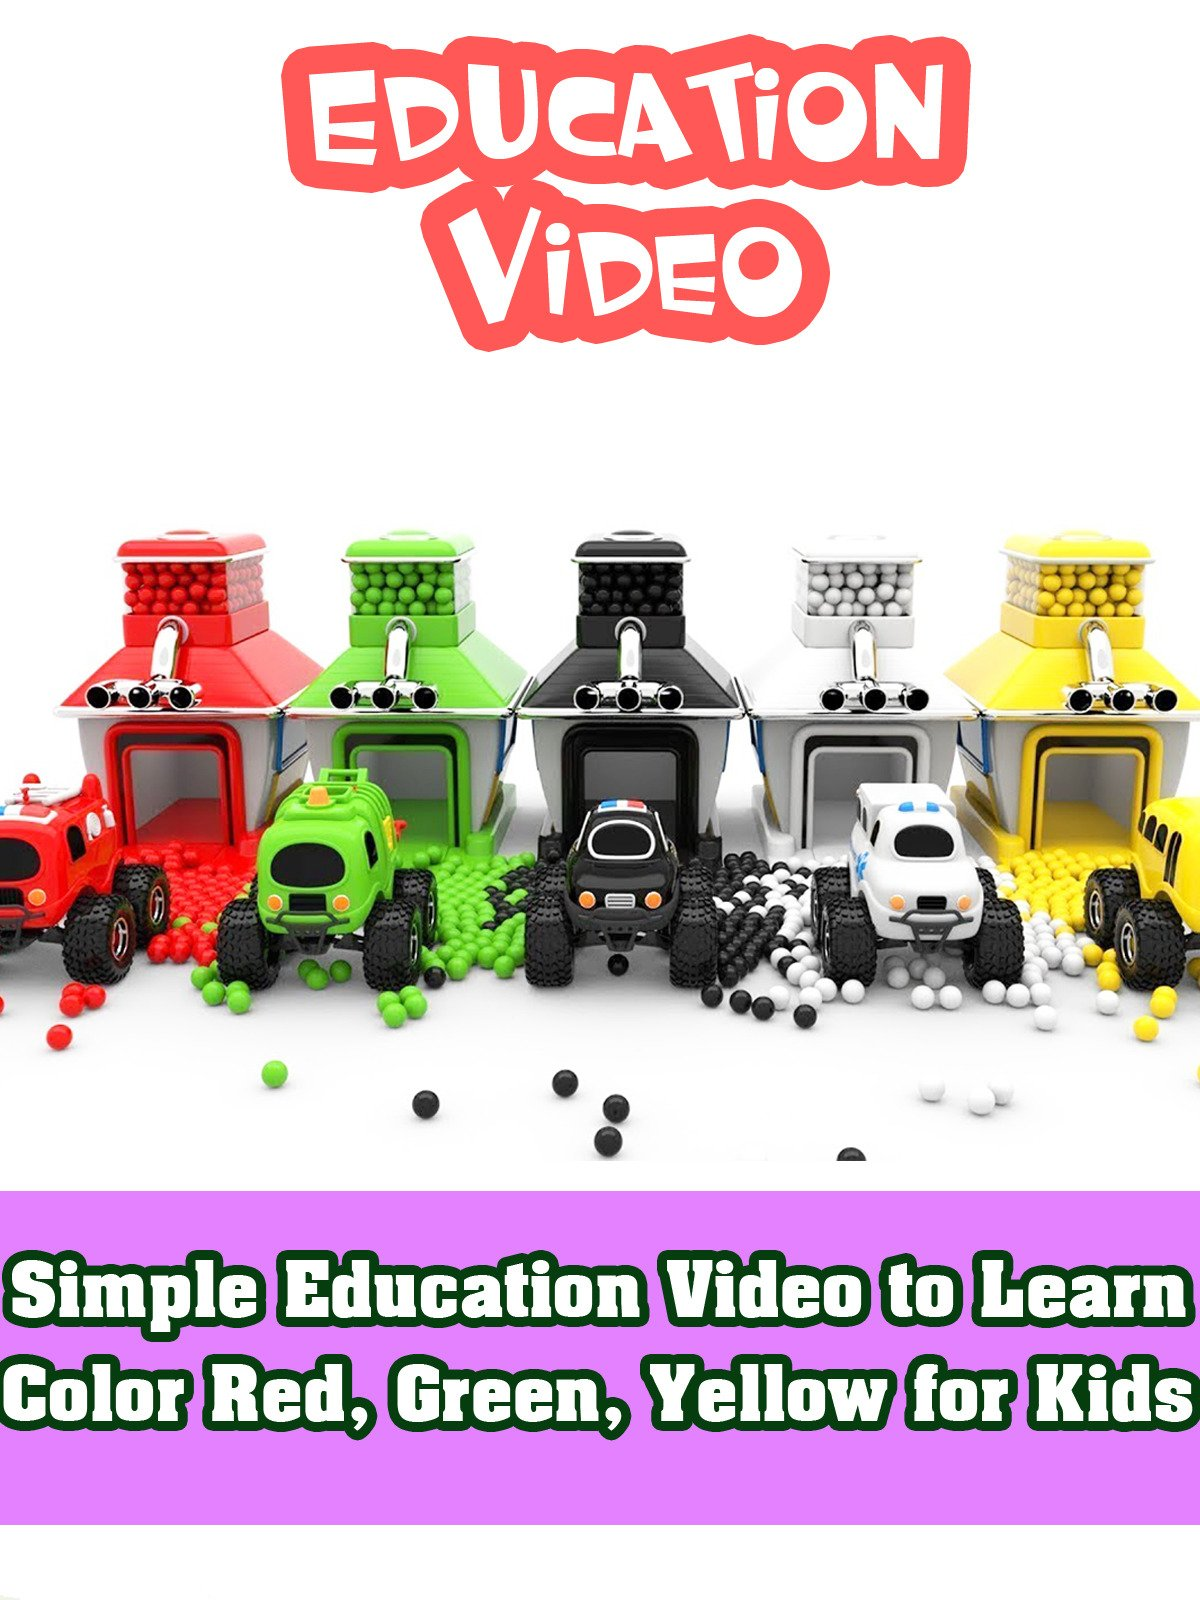 Simple Education Video to Learn Color Red, Green, Yellow for Kids